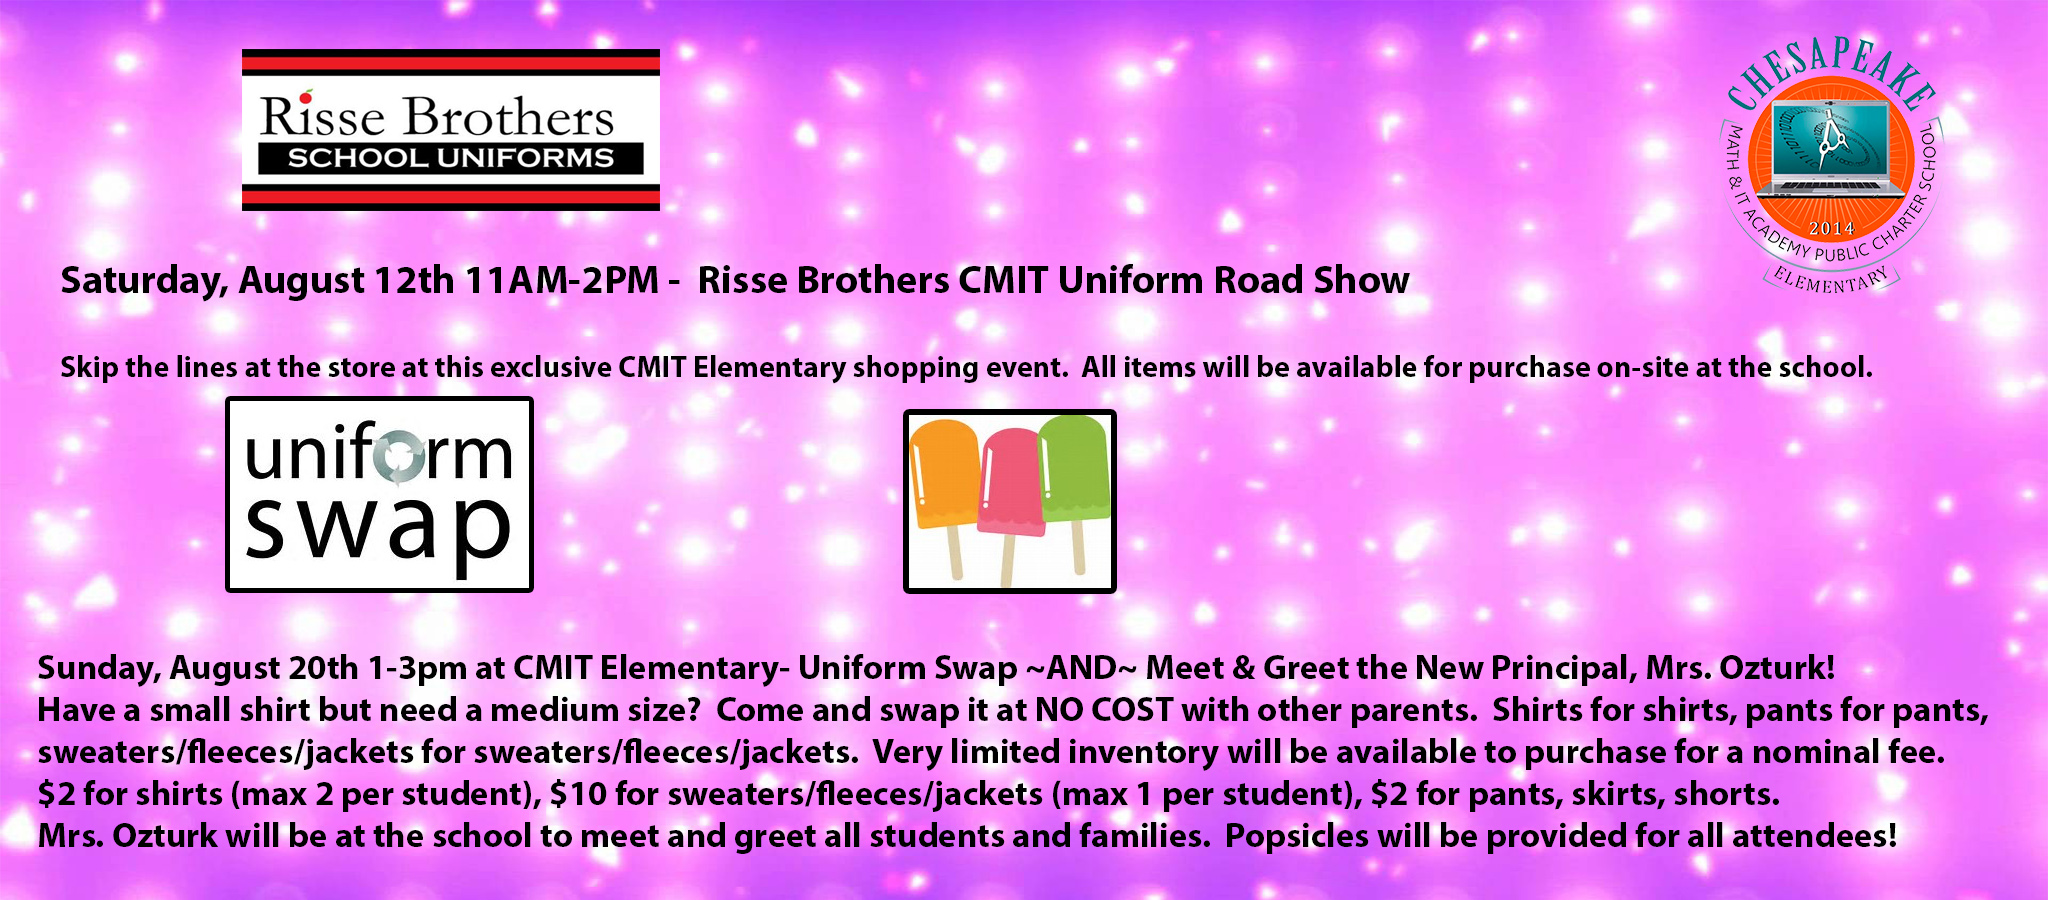 risse-brothers-cmit-uniform-road-show